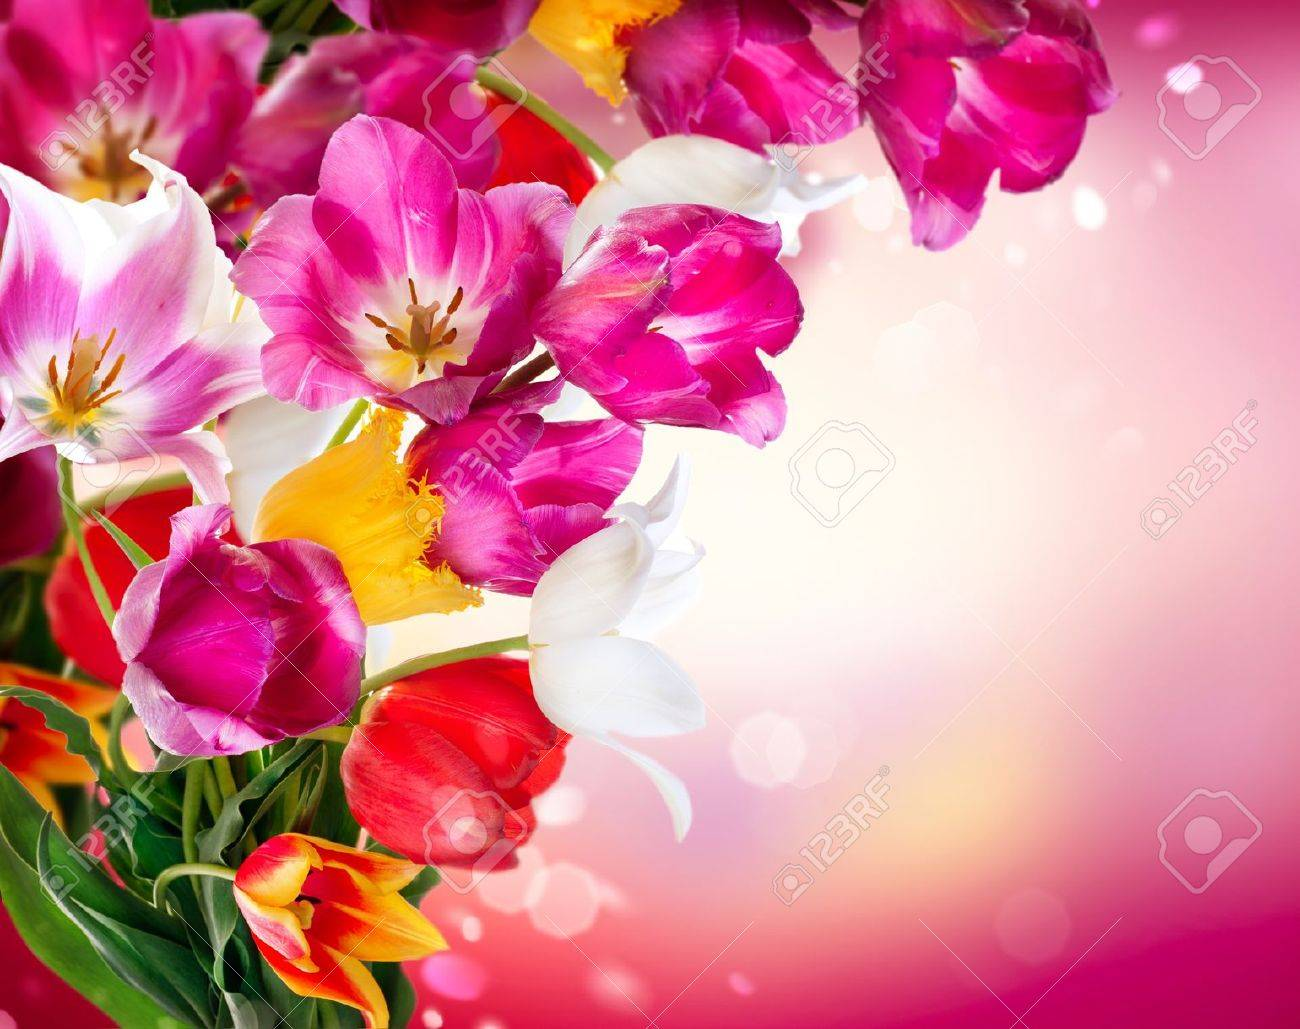 spring flowers tulips border art design stock photo picture and